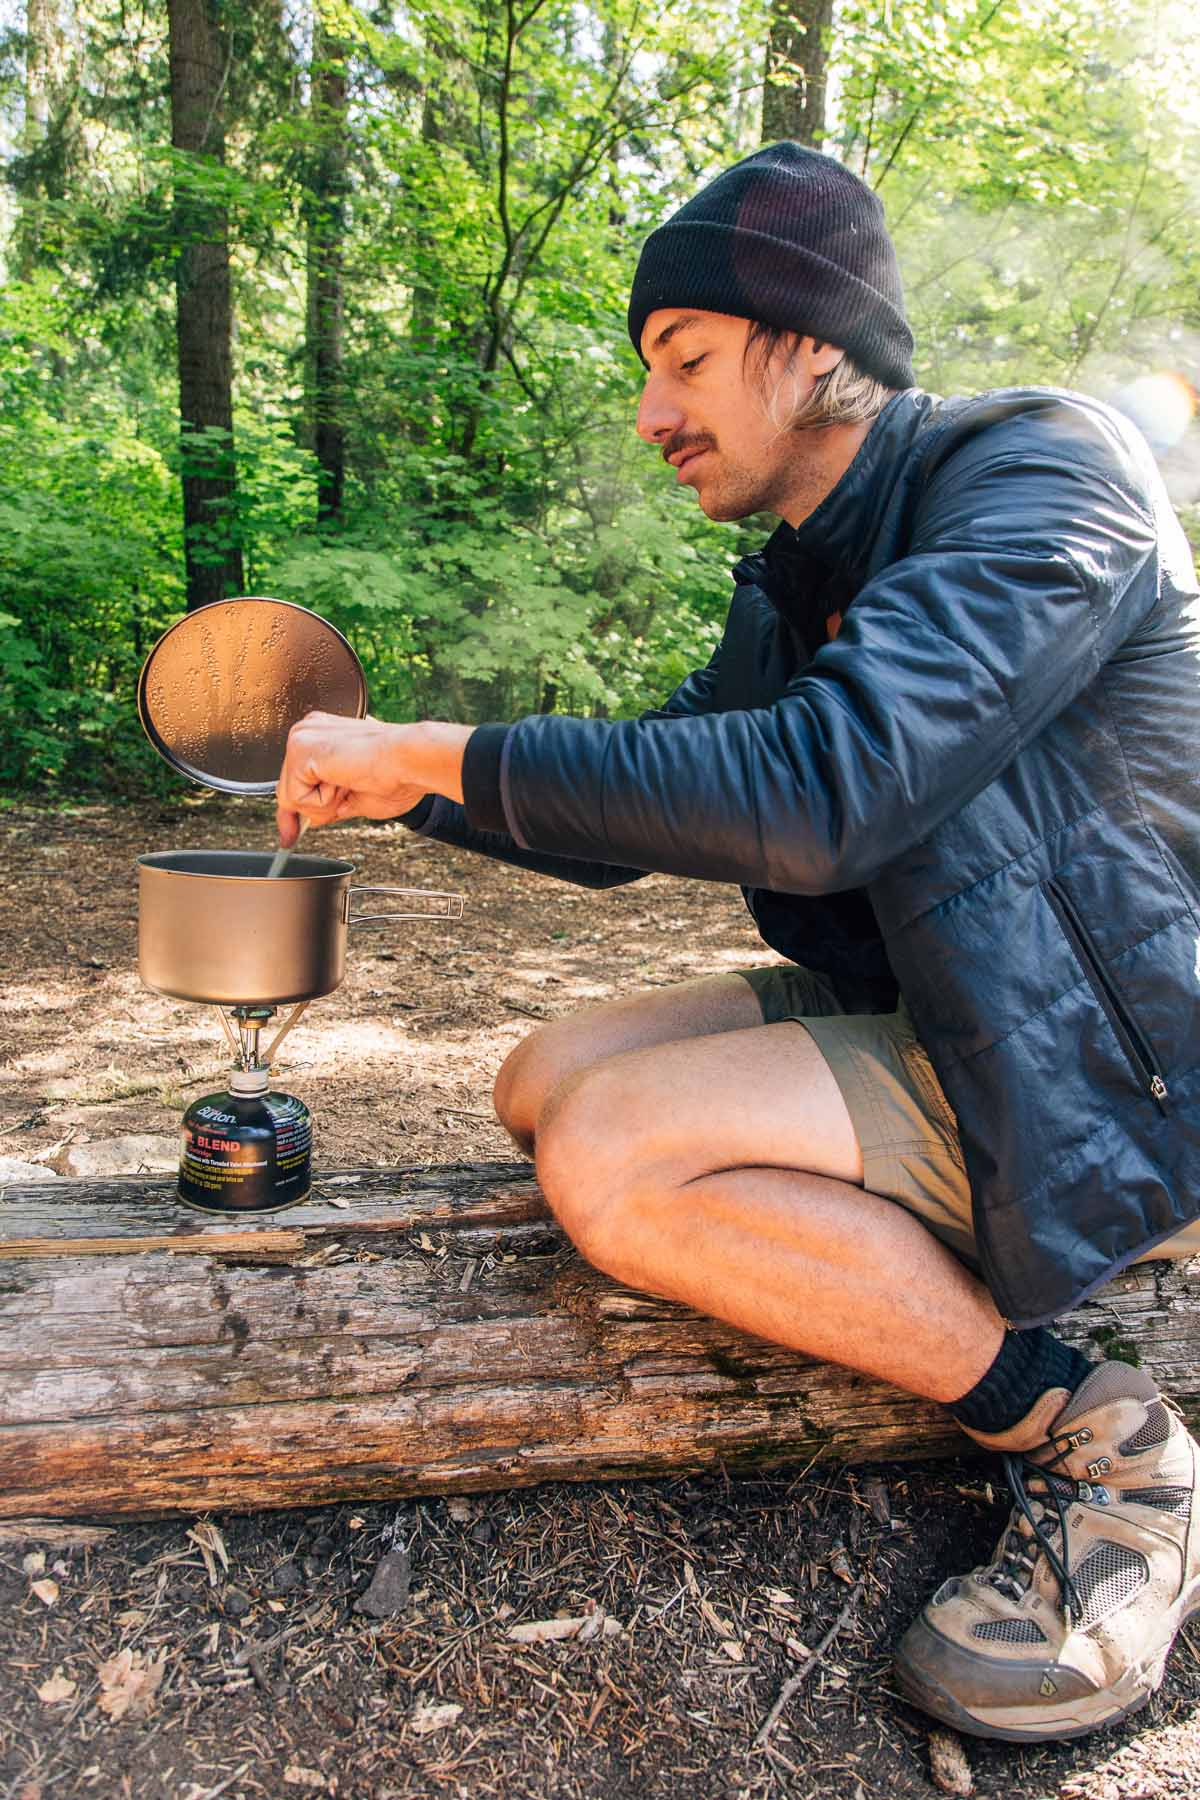 How to cook while backpacking